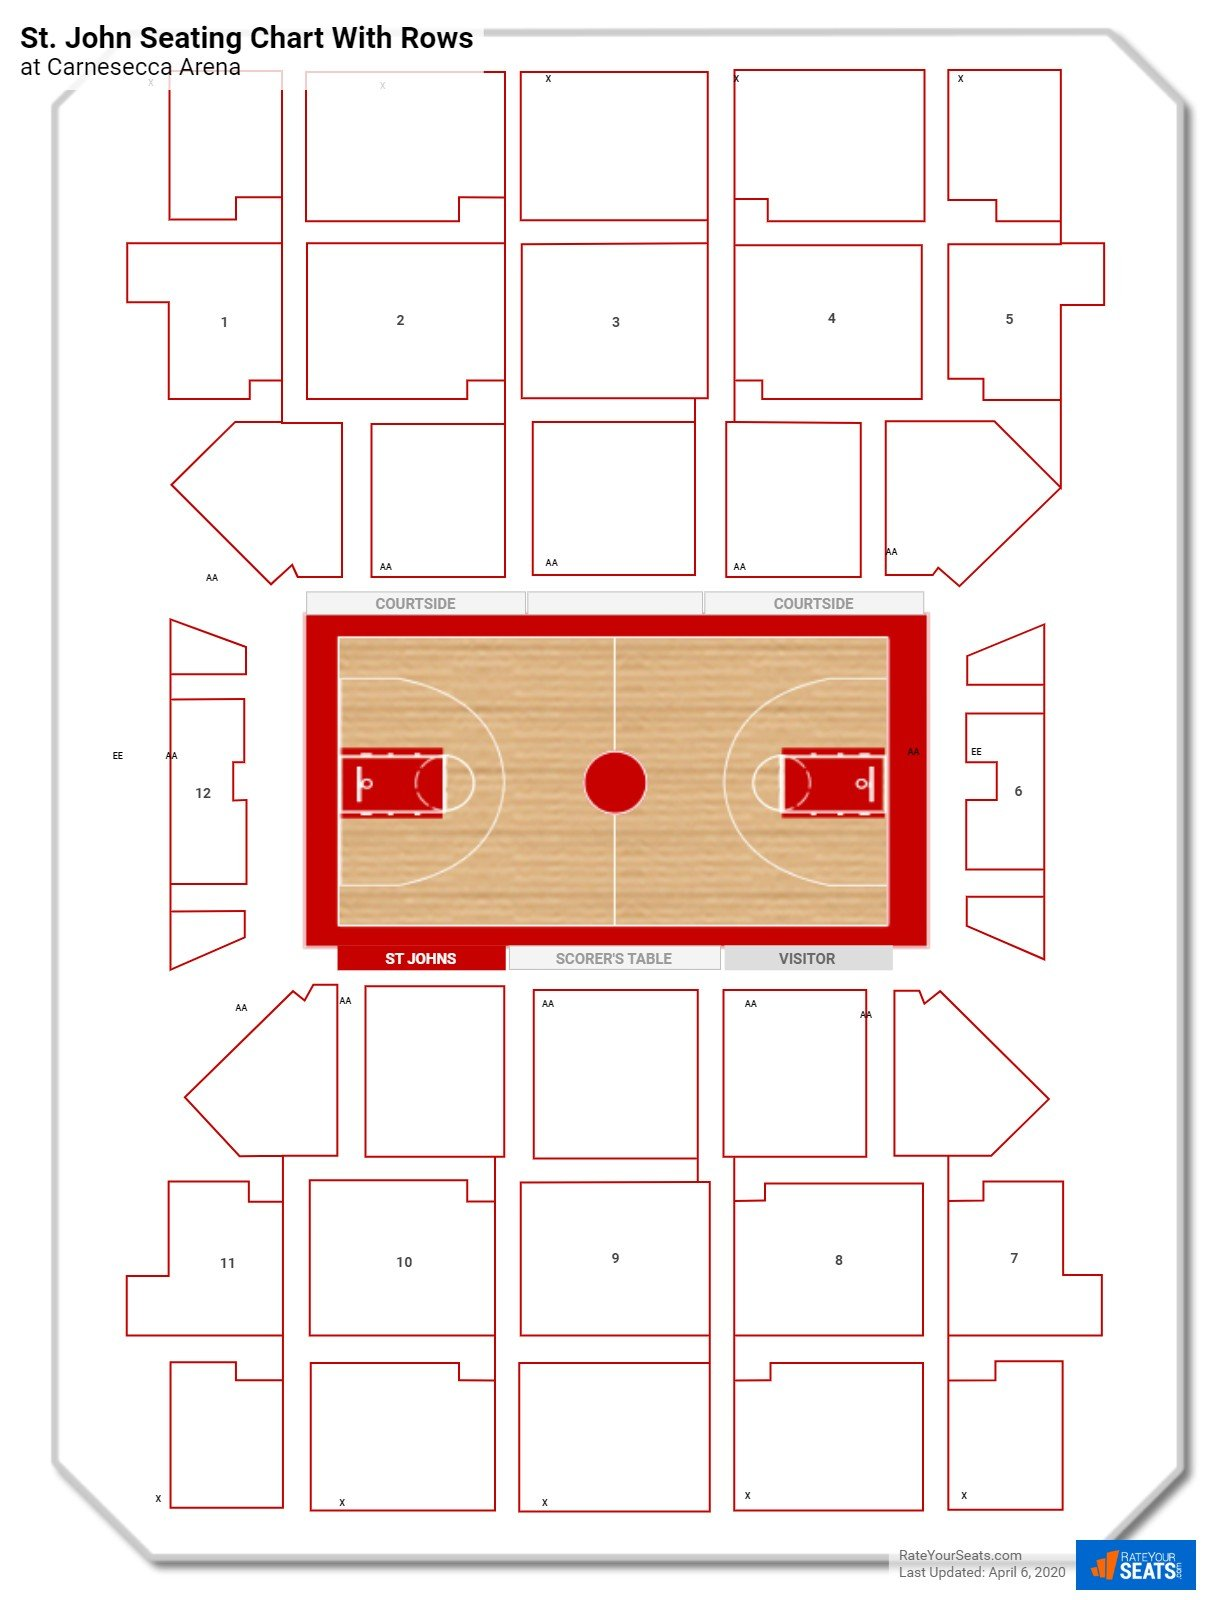 Carnesecca Arena seating chart with rows